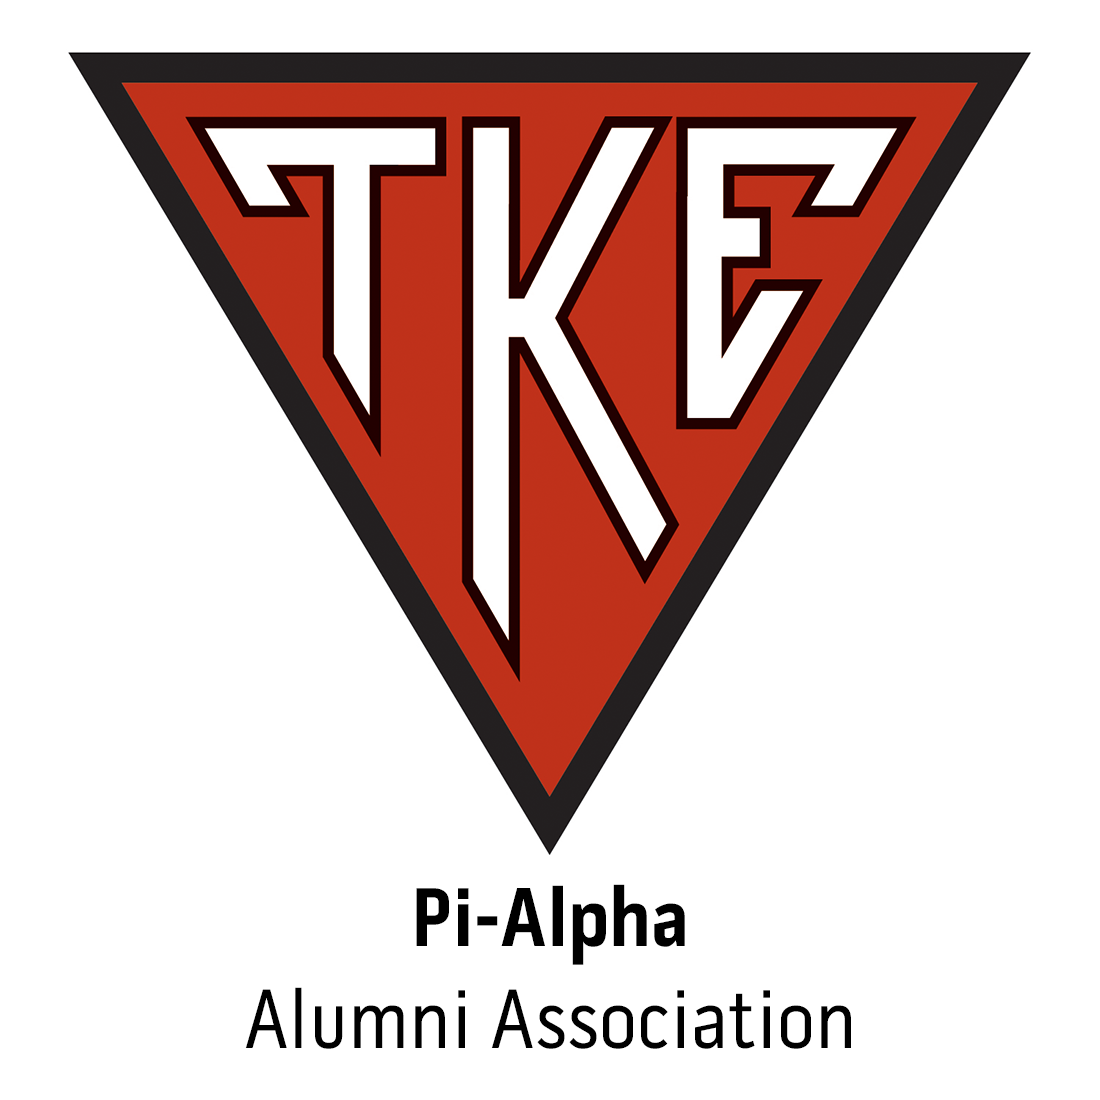 Pi-Alpha Alumni Association at Ashland University